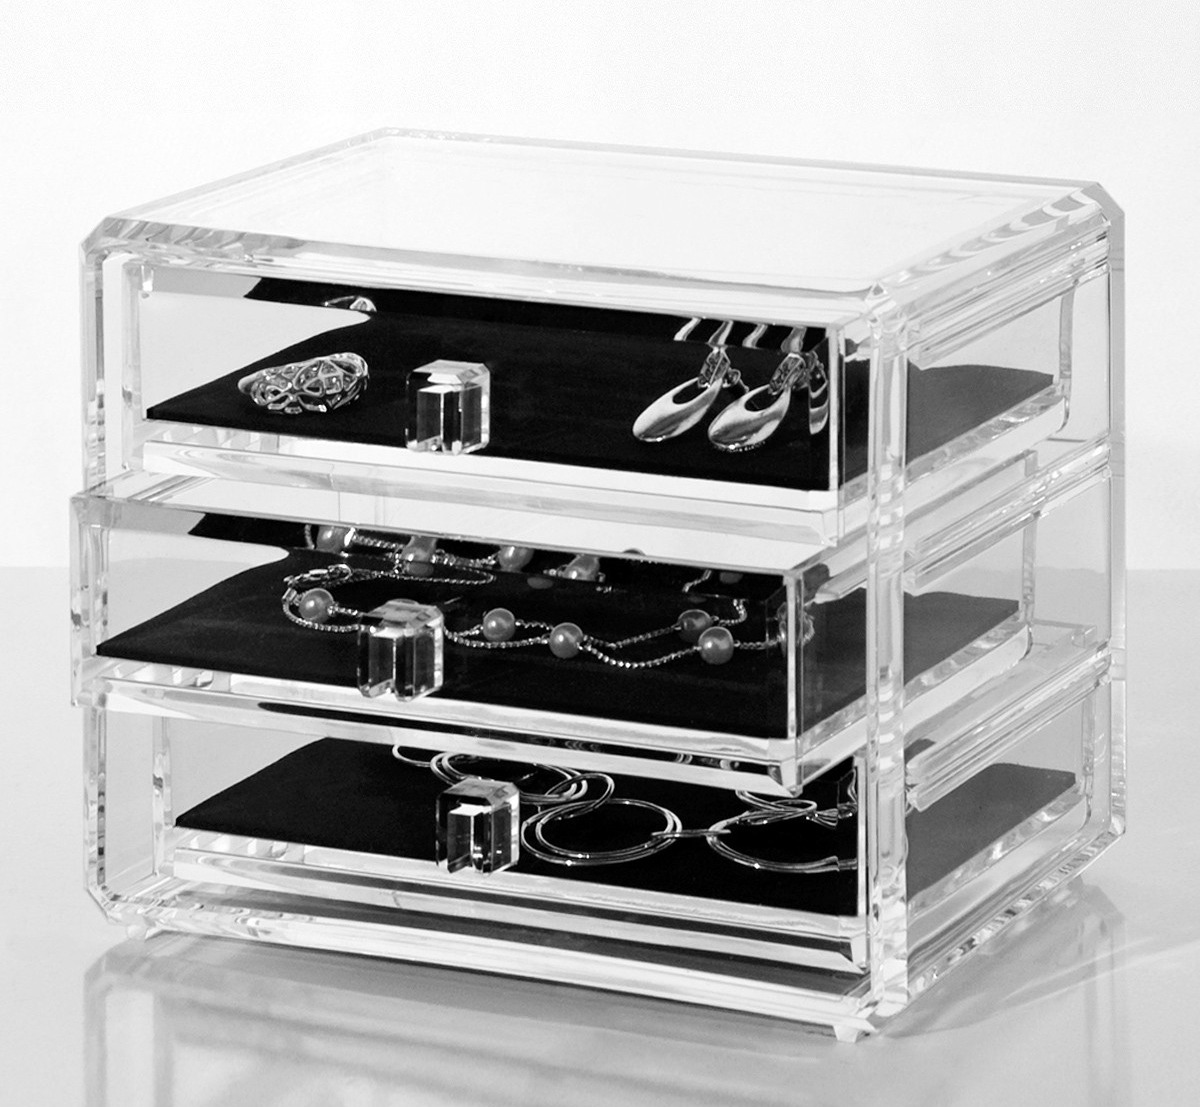 If you've been wanting to get your makeup/vanity organized (like me) then  this is your chance to find great quality storage organizers at  unbelievable ... - Glitz Glam Budget - A Budget Friendly Beauty Blog: Affordable